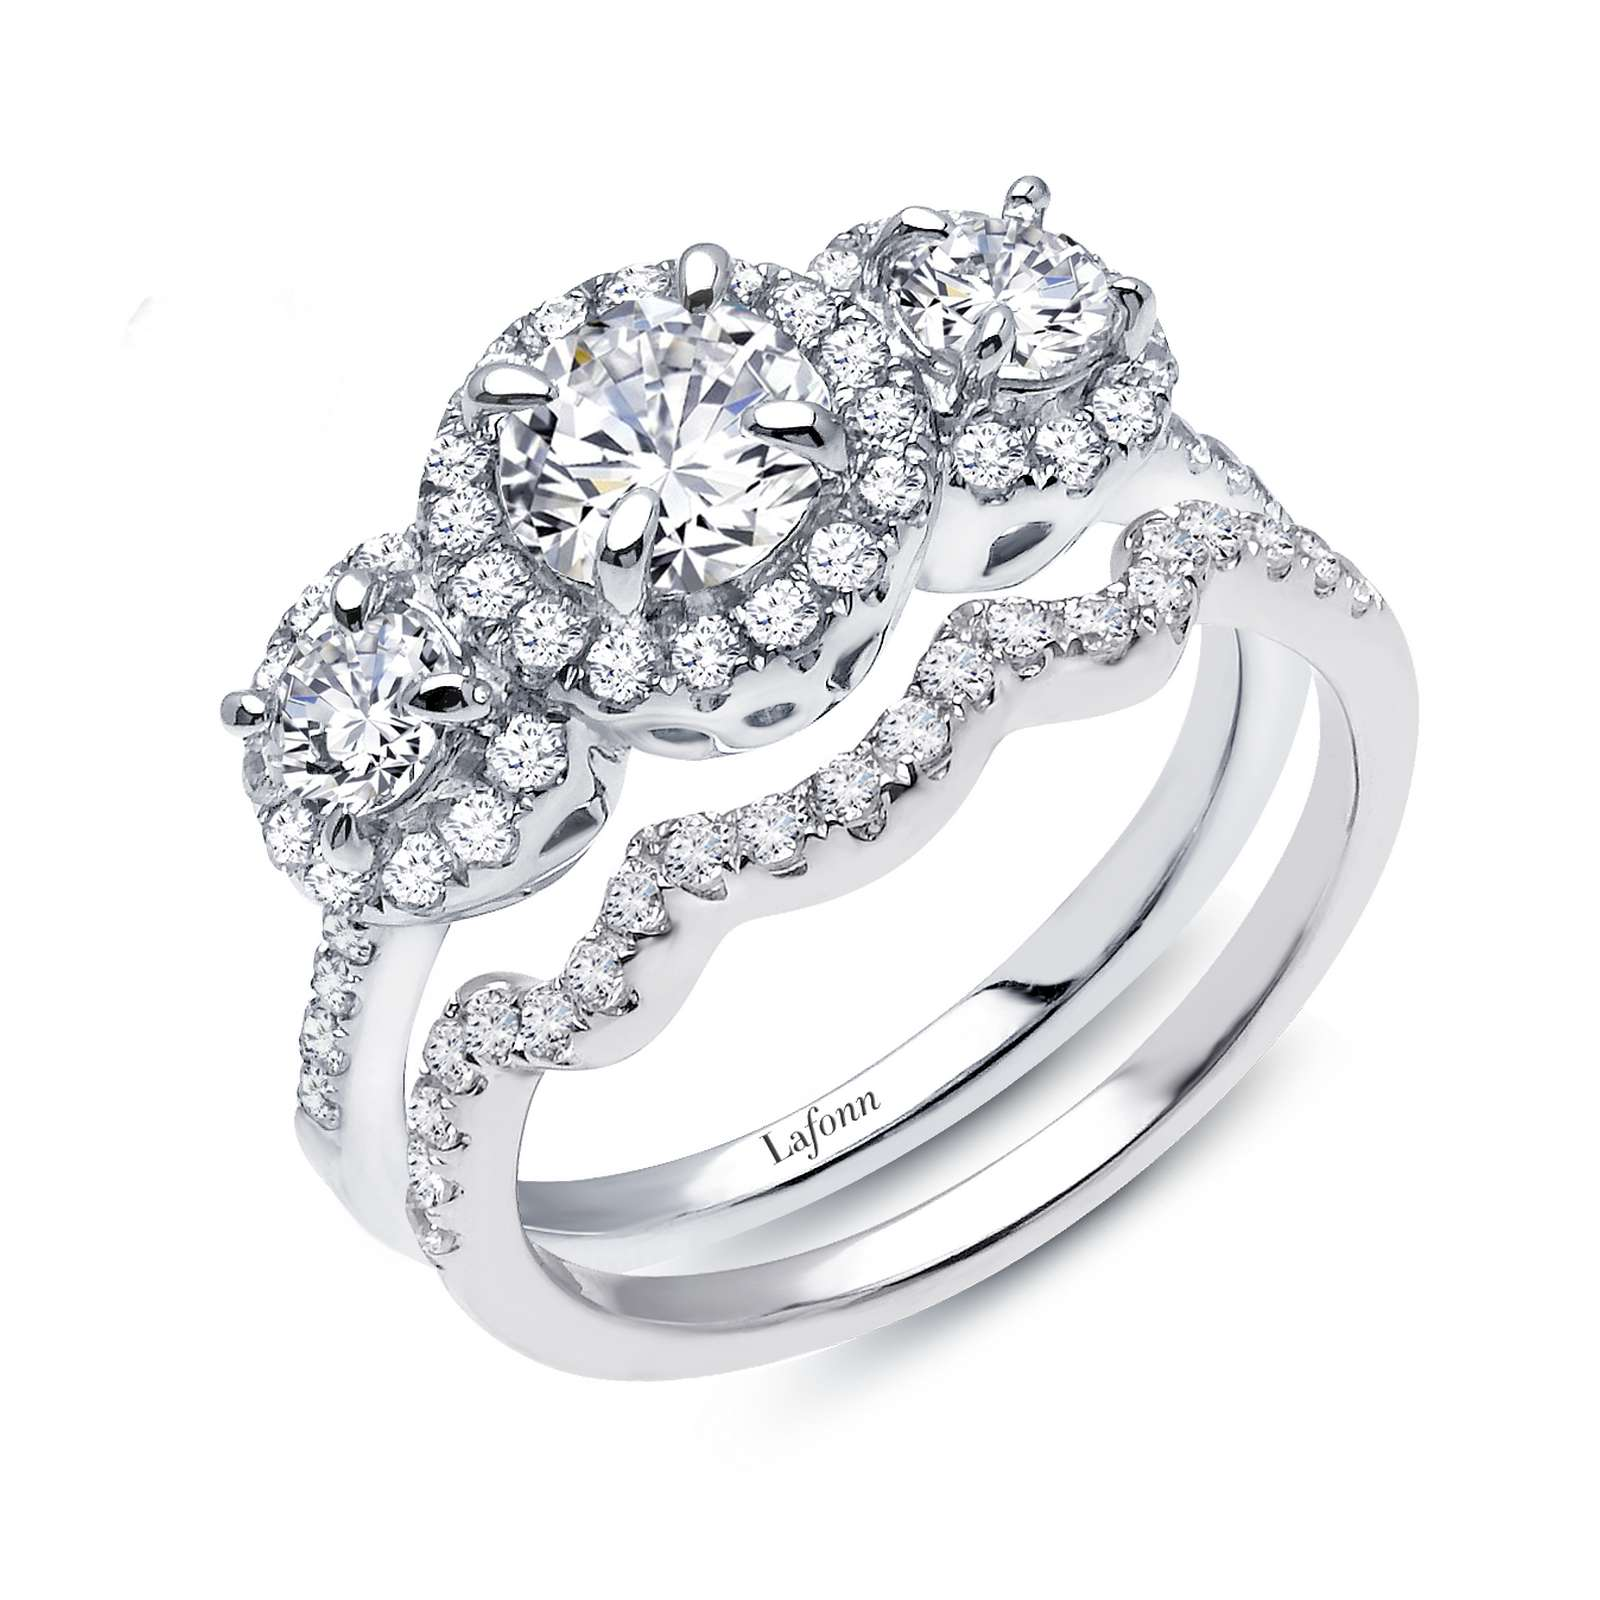 Classic Simulated Diamond Platinum Ring - Elegant and sophisticated. This radiant wedding set is set with Lafonn's signature Lassaire simulated diamonds in sterling silver bonded with platinum.